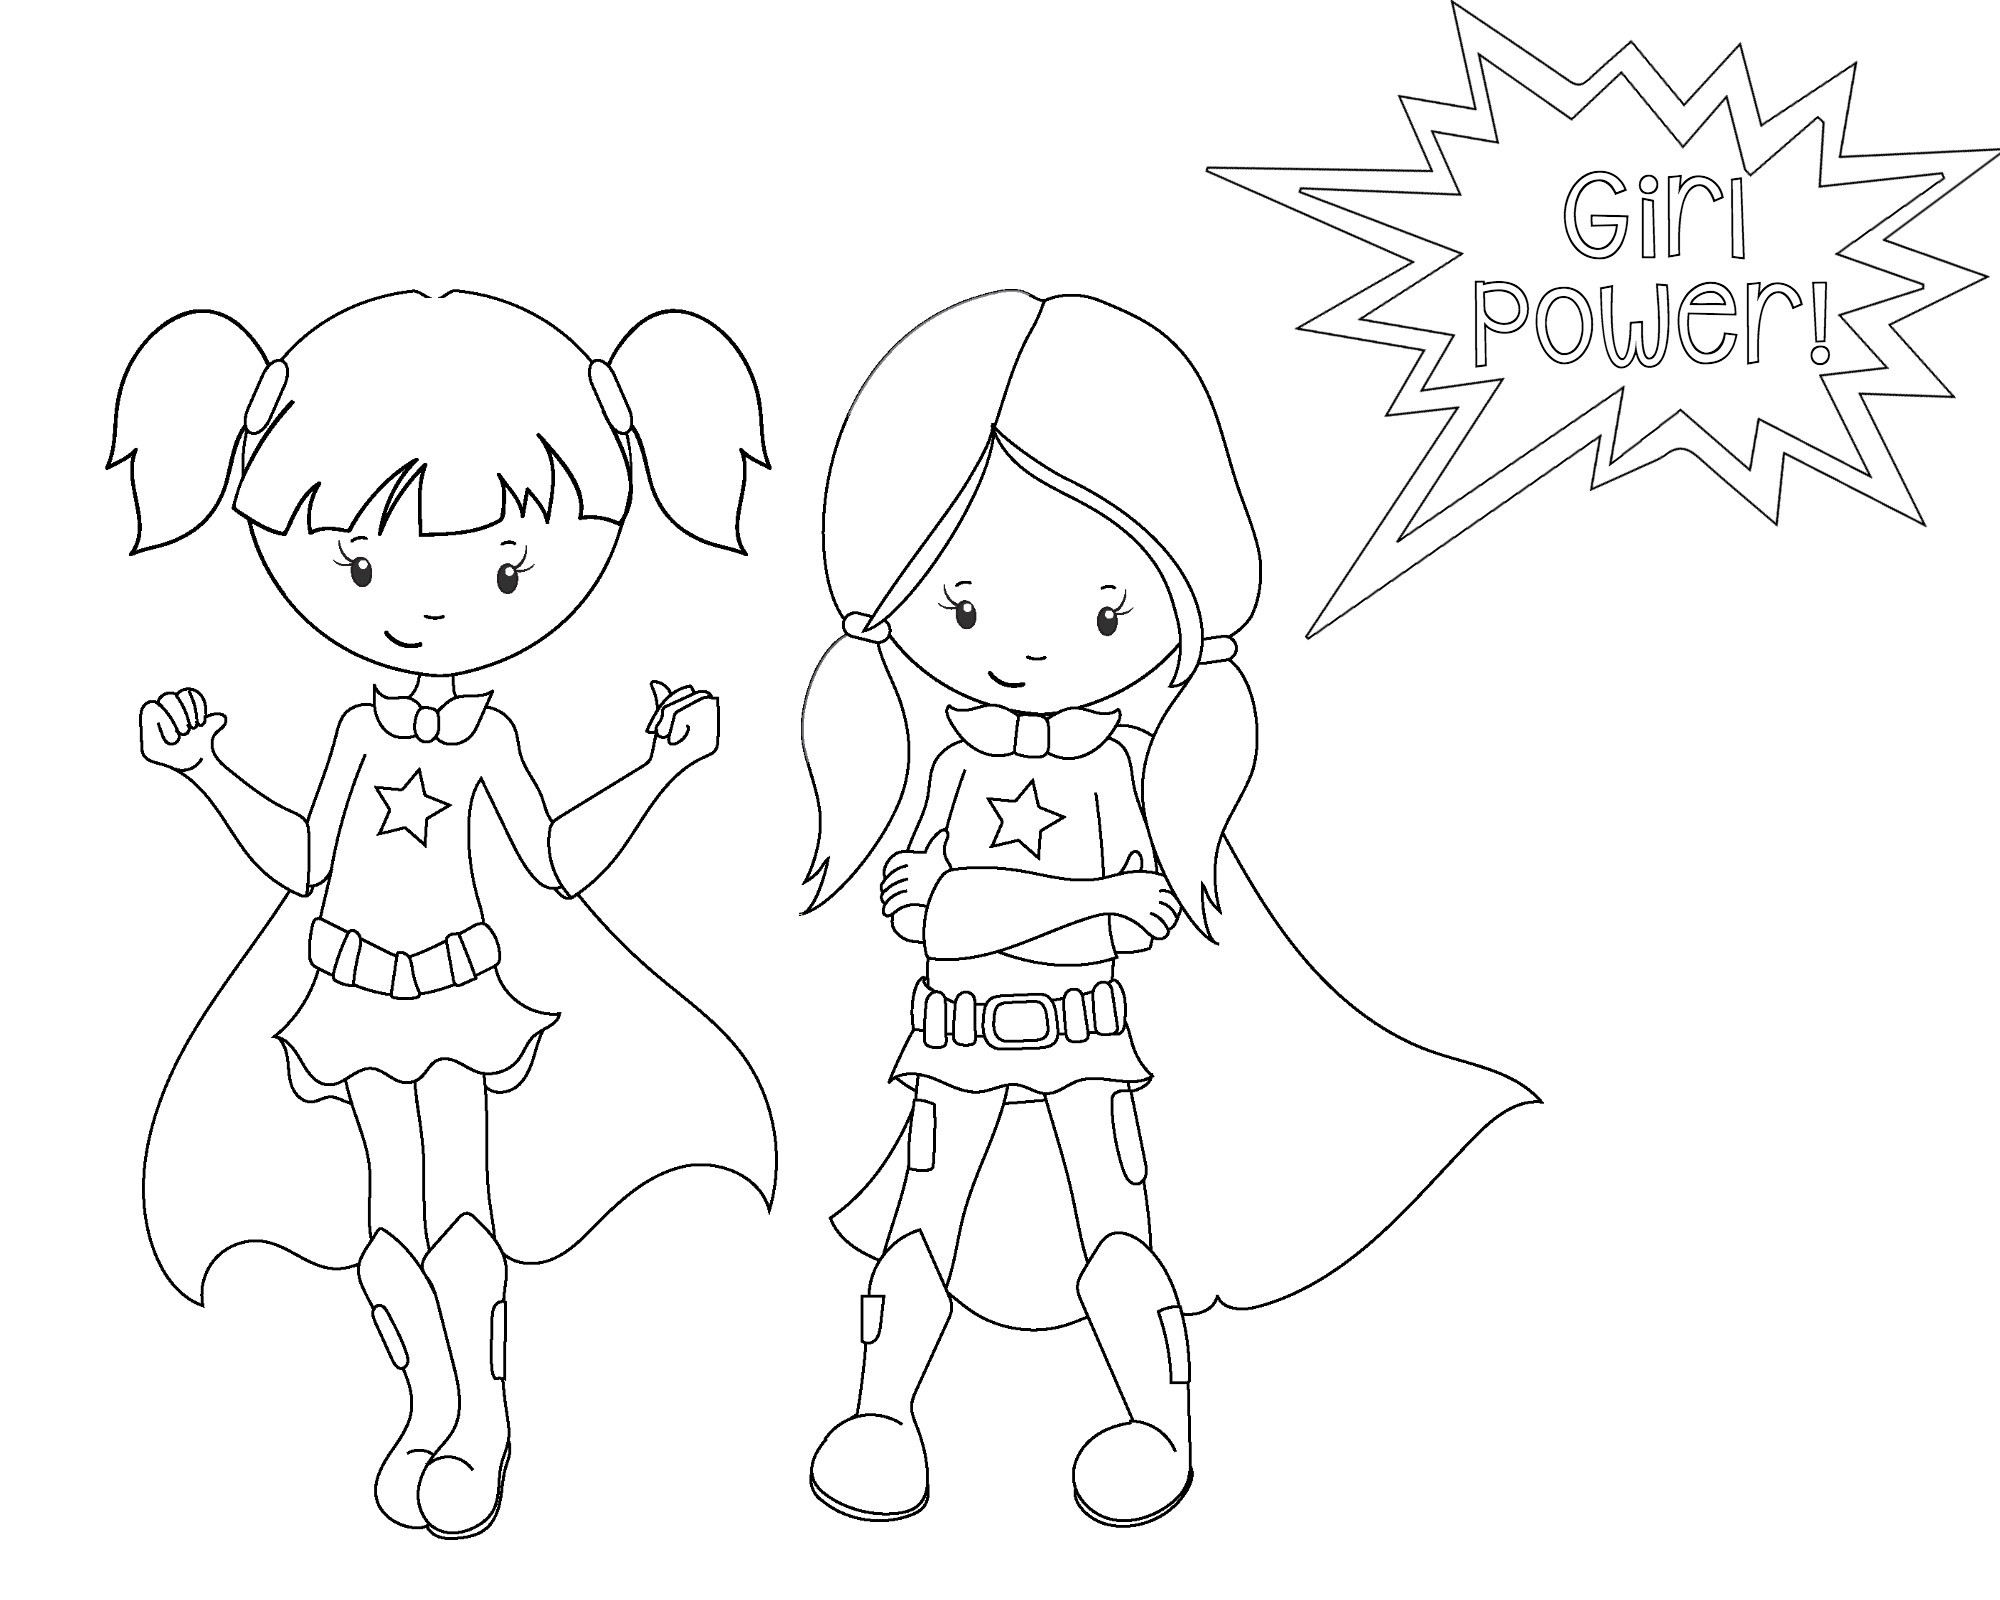 Superhero Coloring Books  Superhero Coloring Pages Crazy Little Projects